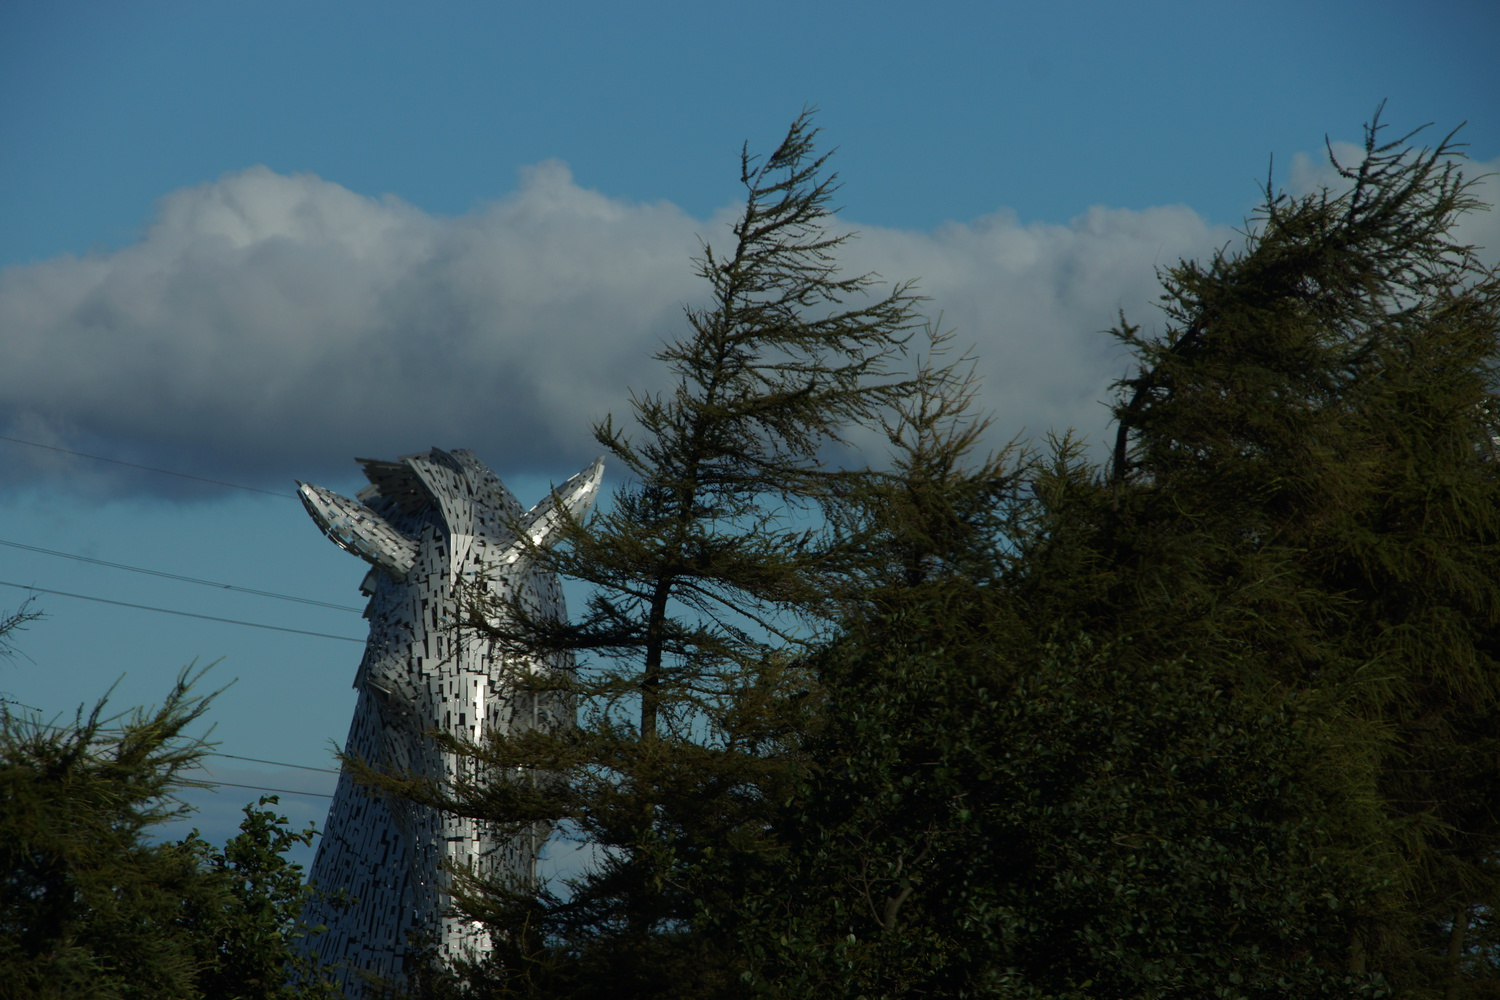 More Kelpies!